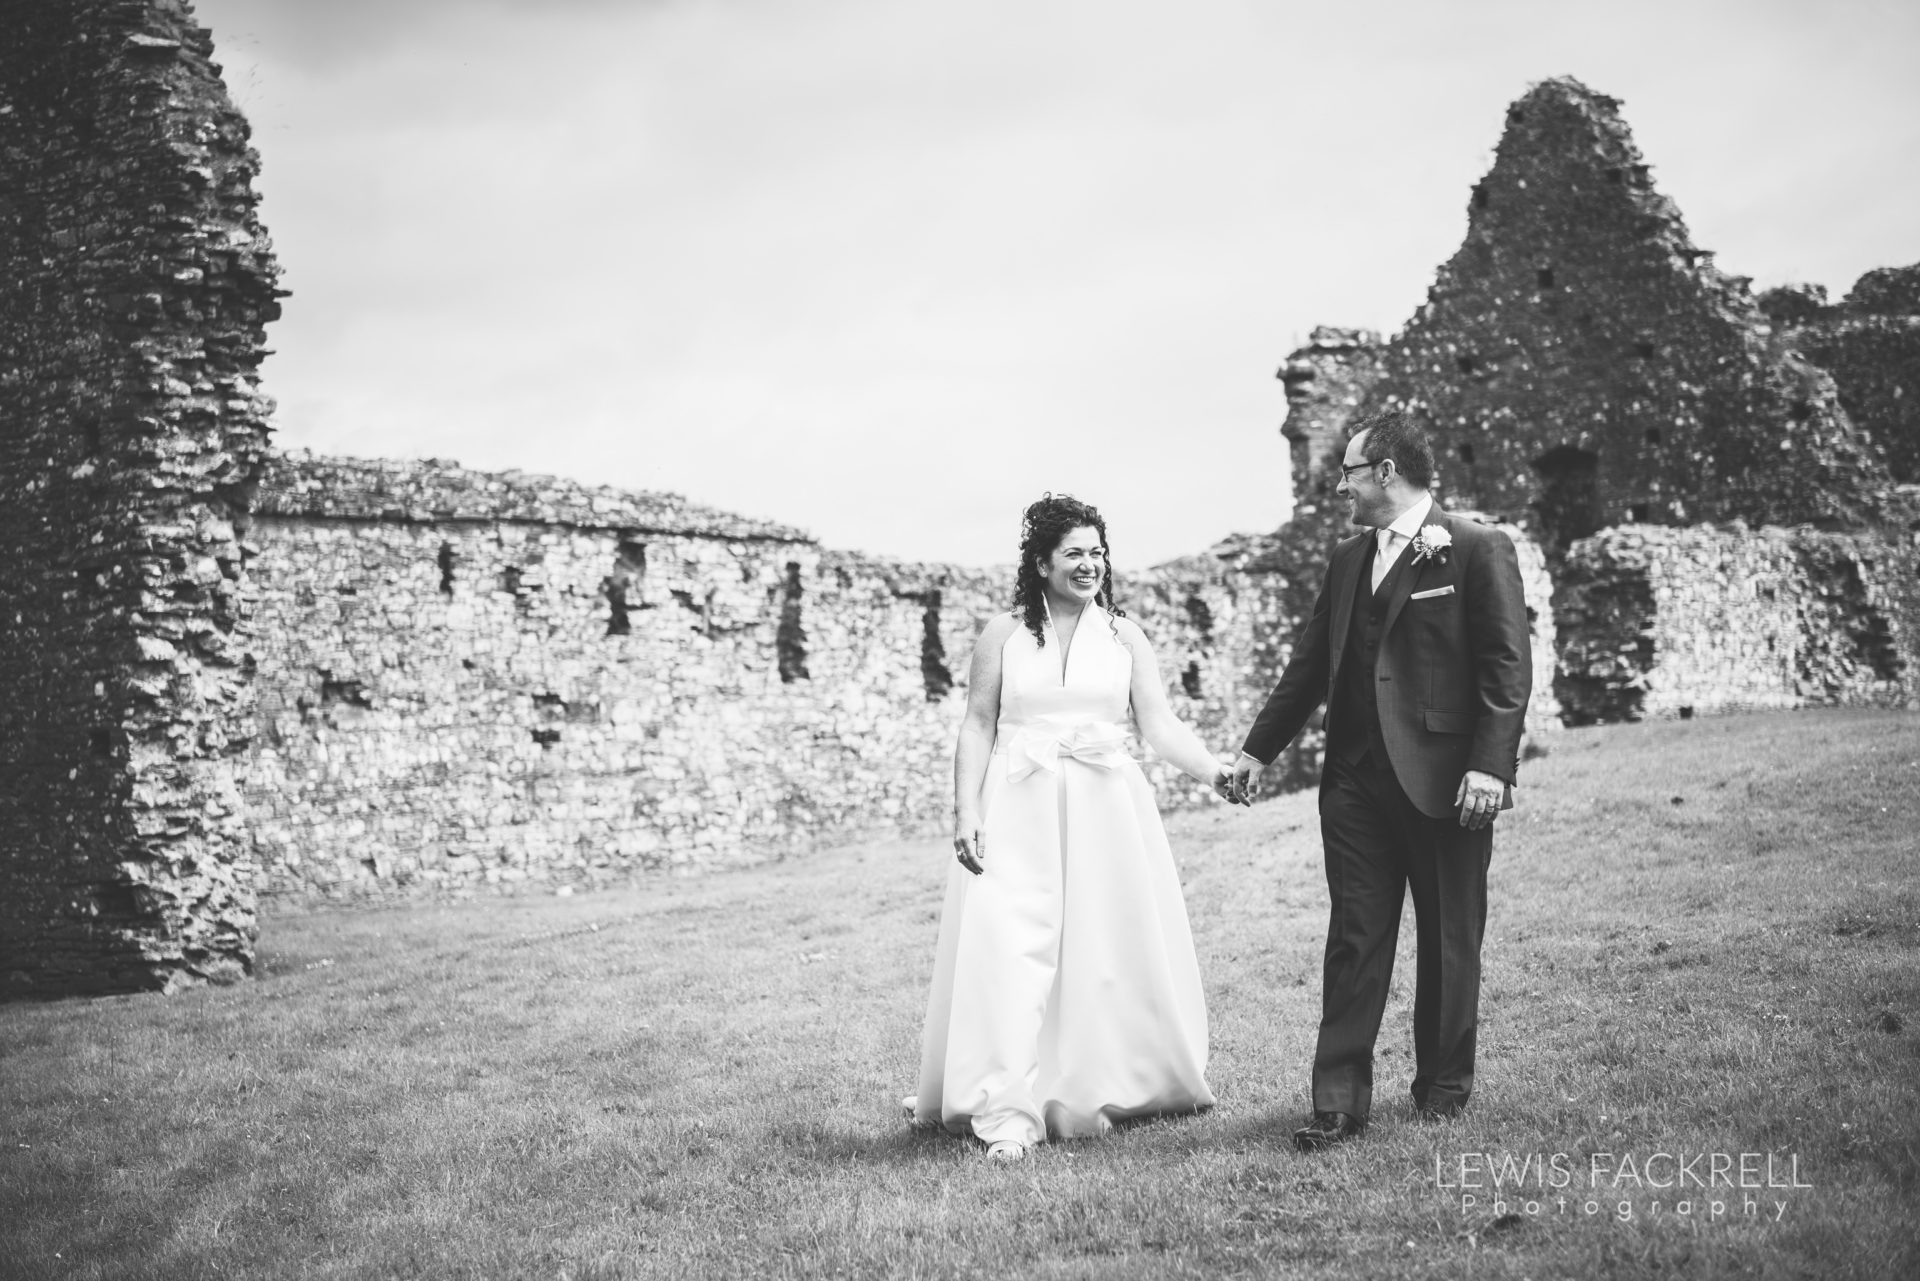 Lewis-Fackrell-Photography-Wedding-Photographer-Cardiff-Swansea-Bristol-Newport-Pre-wedding-photoshoot-Rhian-Mark-Mansion-House-Llansteffan-Carmarthenshire--67